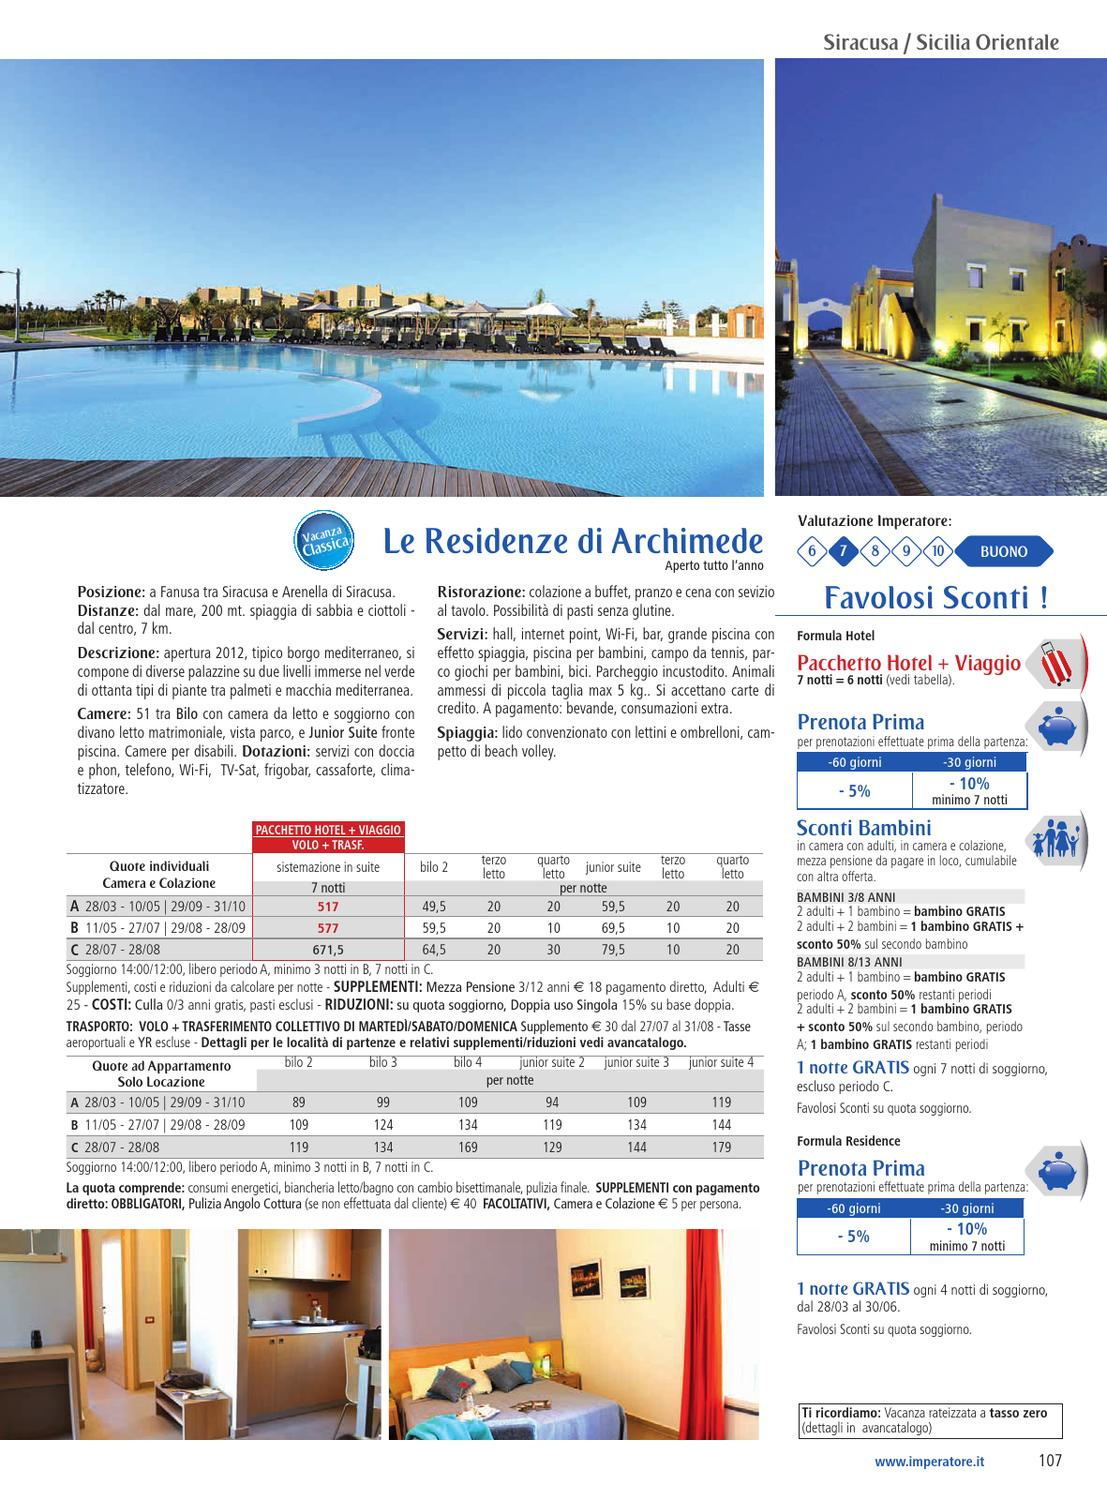 Le Residenze Di Archimede Foto sicilia 2013 - imperatore travel by imperatore travel - issuu